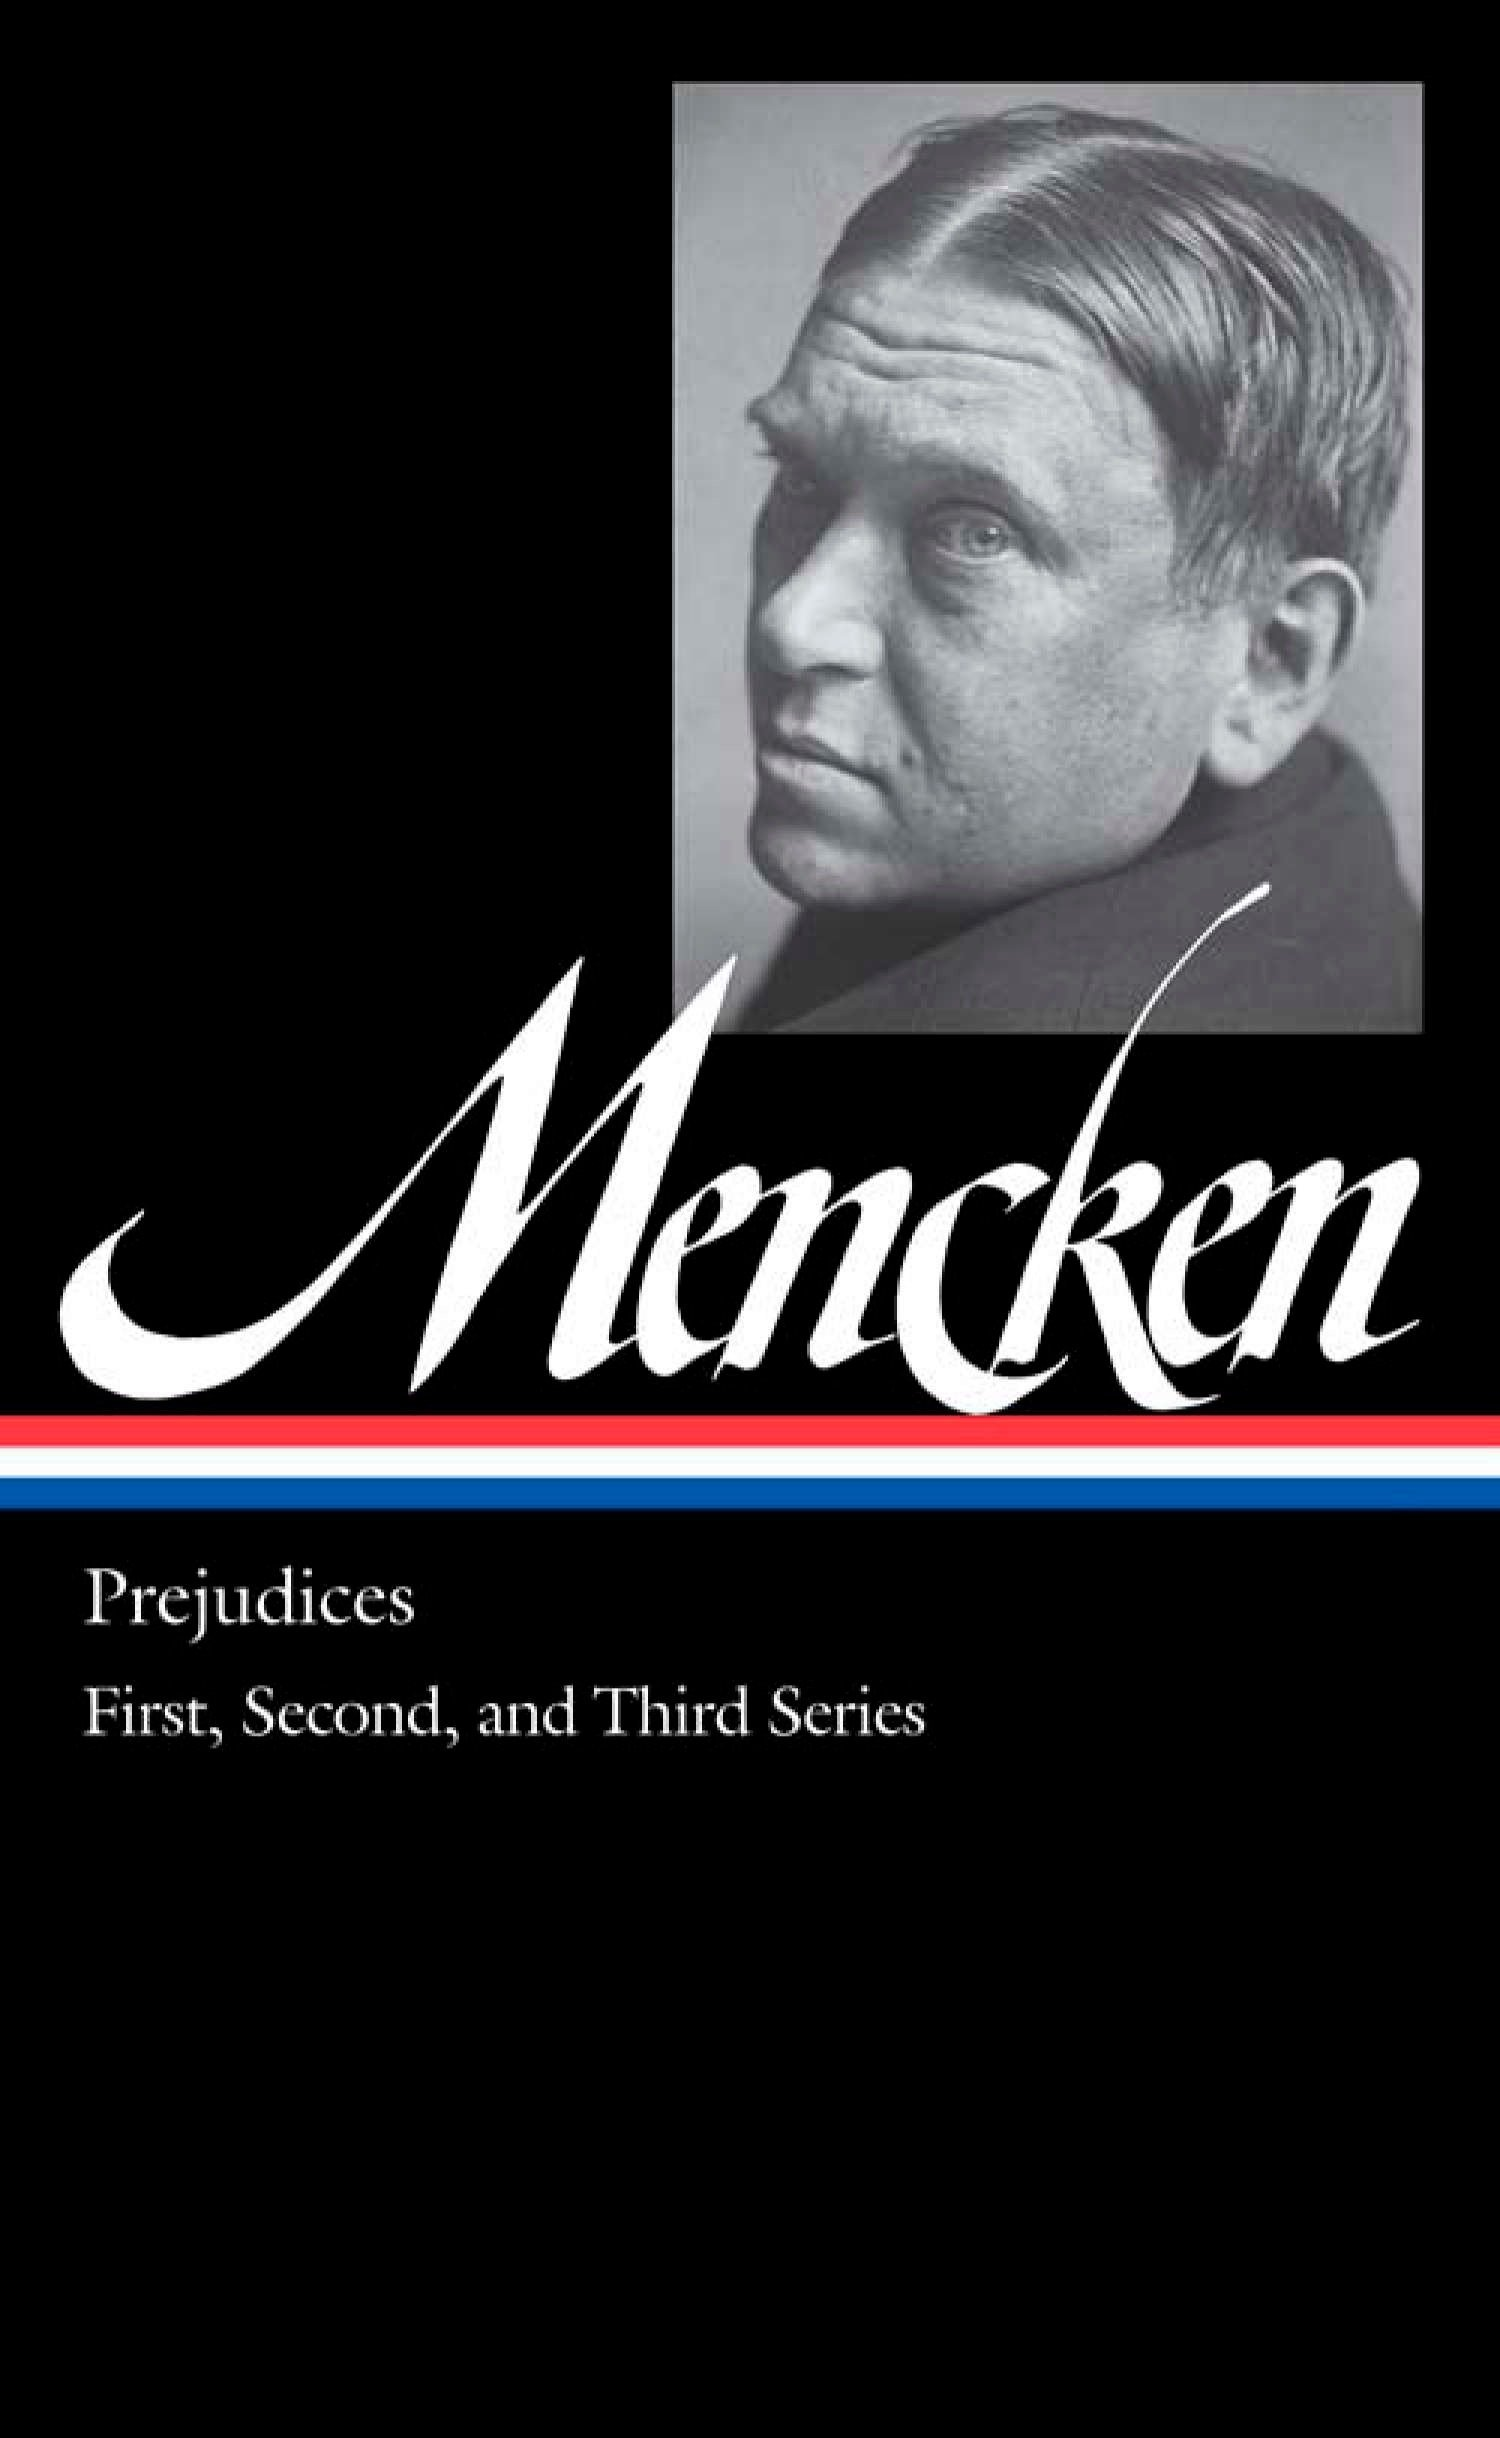 Read Online H. L. Mencken: Prejudices Vol. 1 (LOA #206): First, Second, and Third Series (Library of America H. L. Mencken Edition) pdf